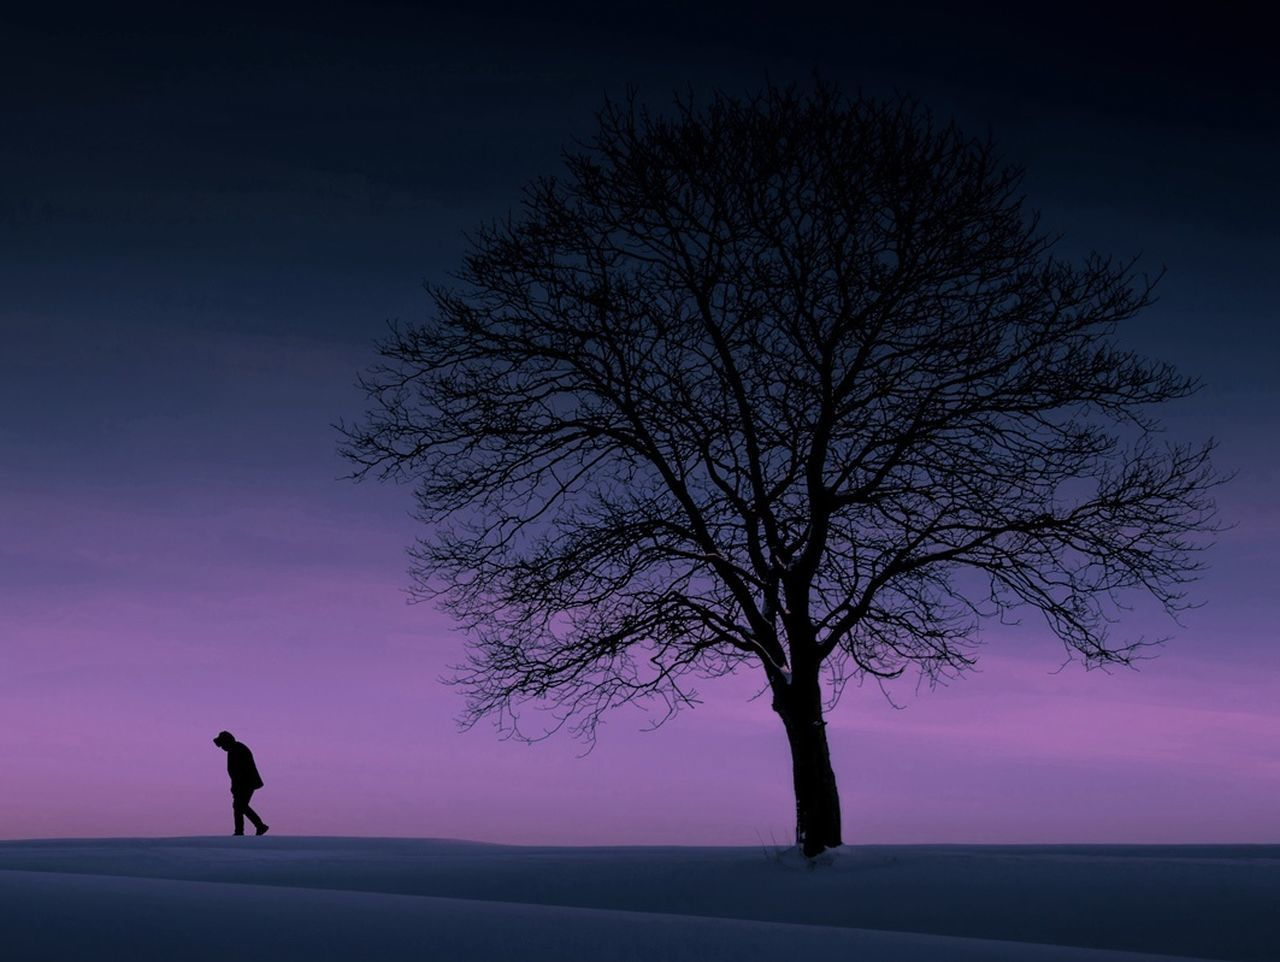 Silhouette Tree One Person One Man Only Adults Only Full Length Only Men People Beauty In Nature Men Winter Landscape Night Adult Sunset Nature Adventure Outdoors Sky Sportsman Silhouette Tree Winther Snow Purple Minimalisme